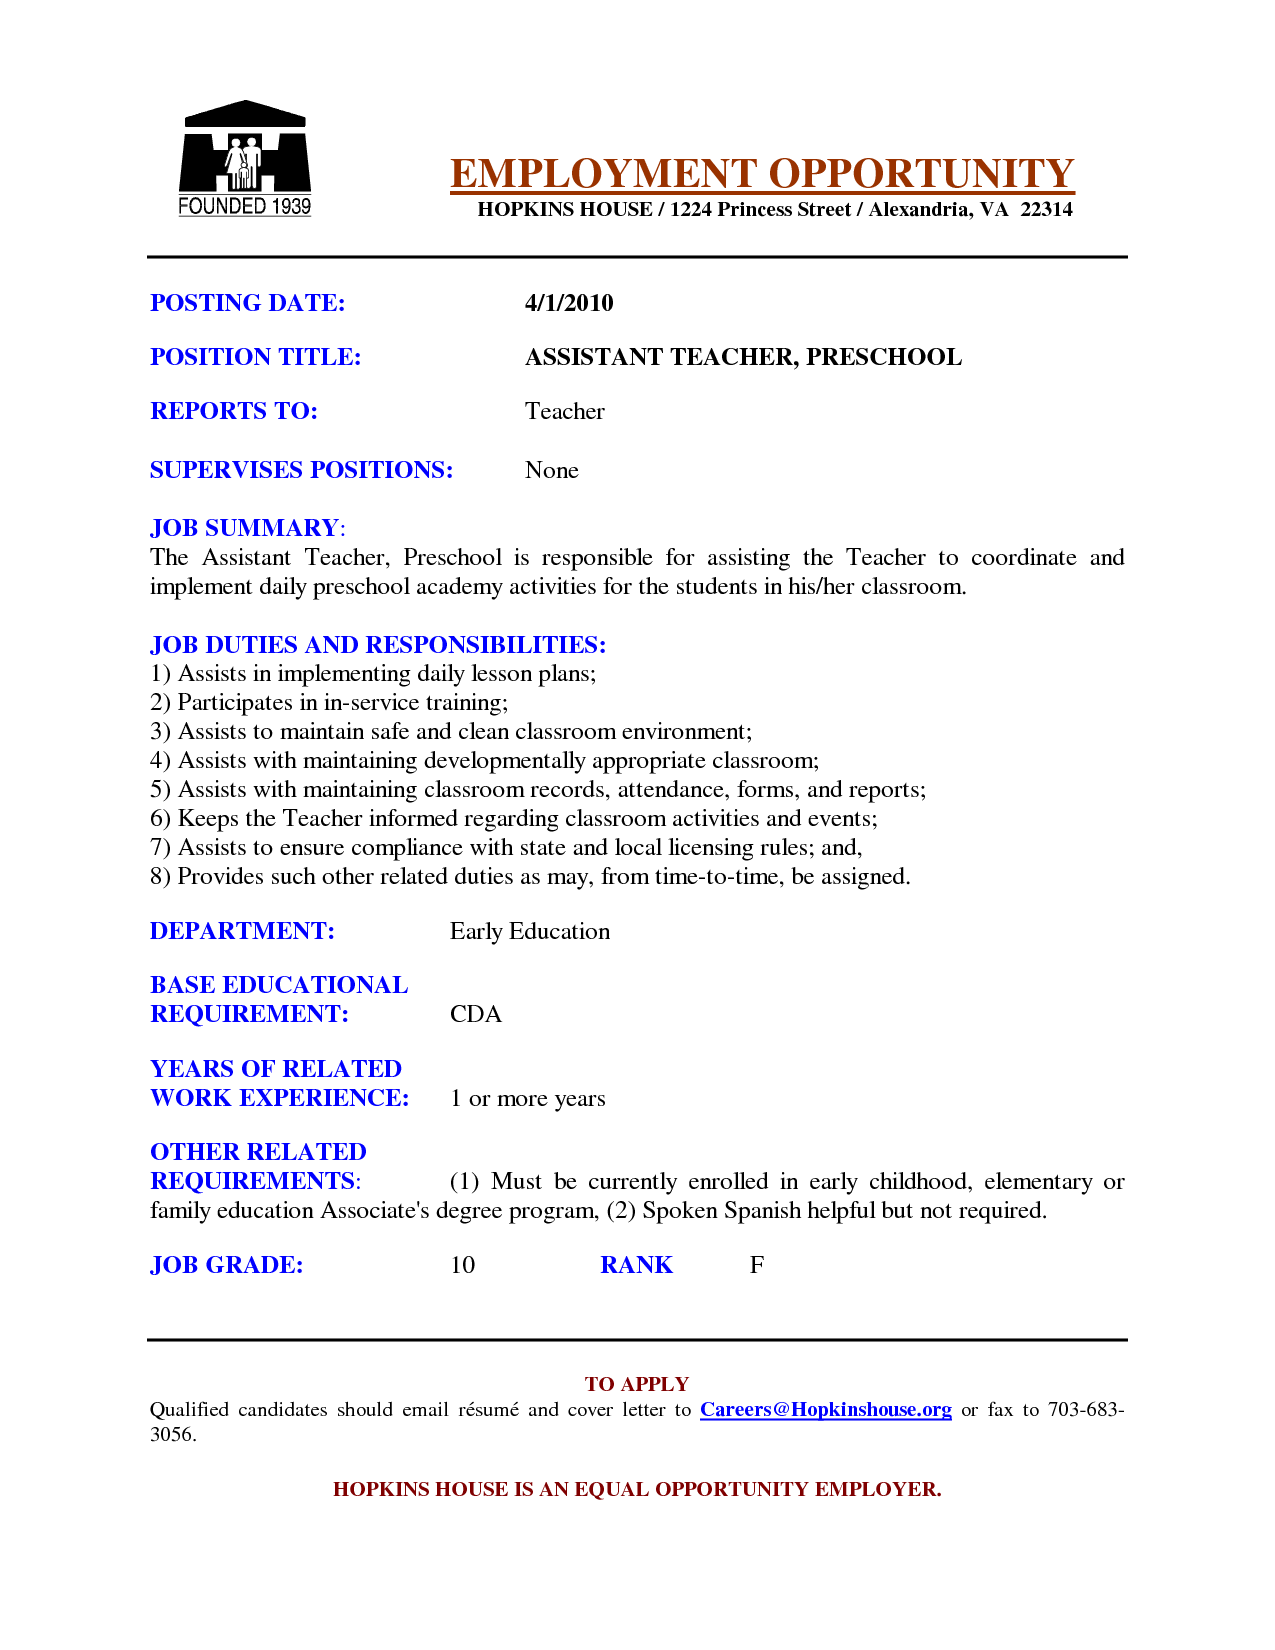 Teacher Resume Examples Amazing Preschool Assistant Teacher Resume Examples  Google Search Inspiration